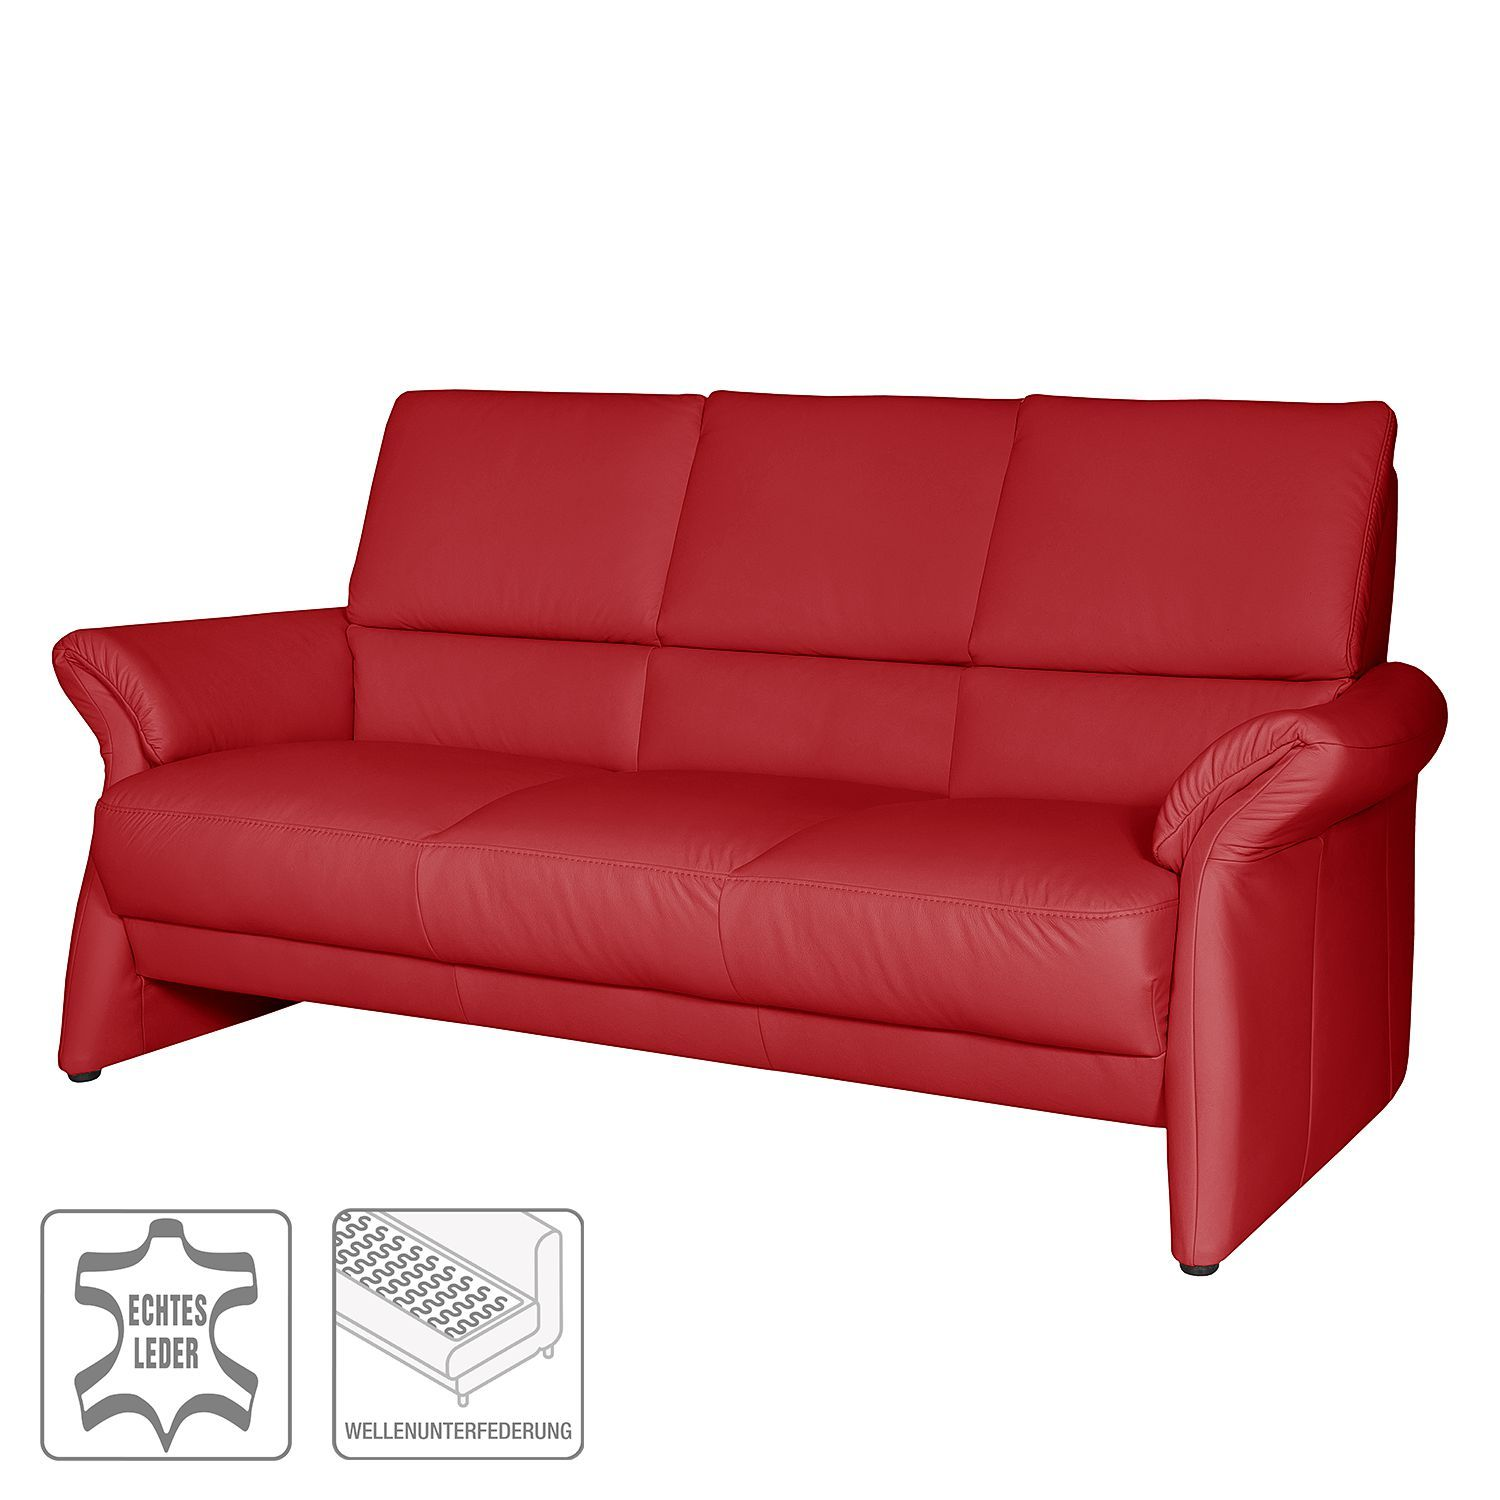 Canape Patay 3 Places Cuir Veritable In 2020 Sofa Mit Relaxfunktion Sofa Und Sofas